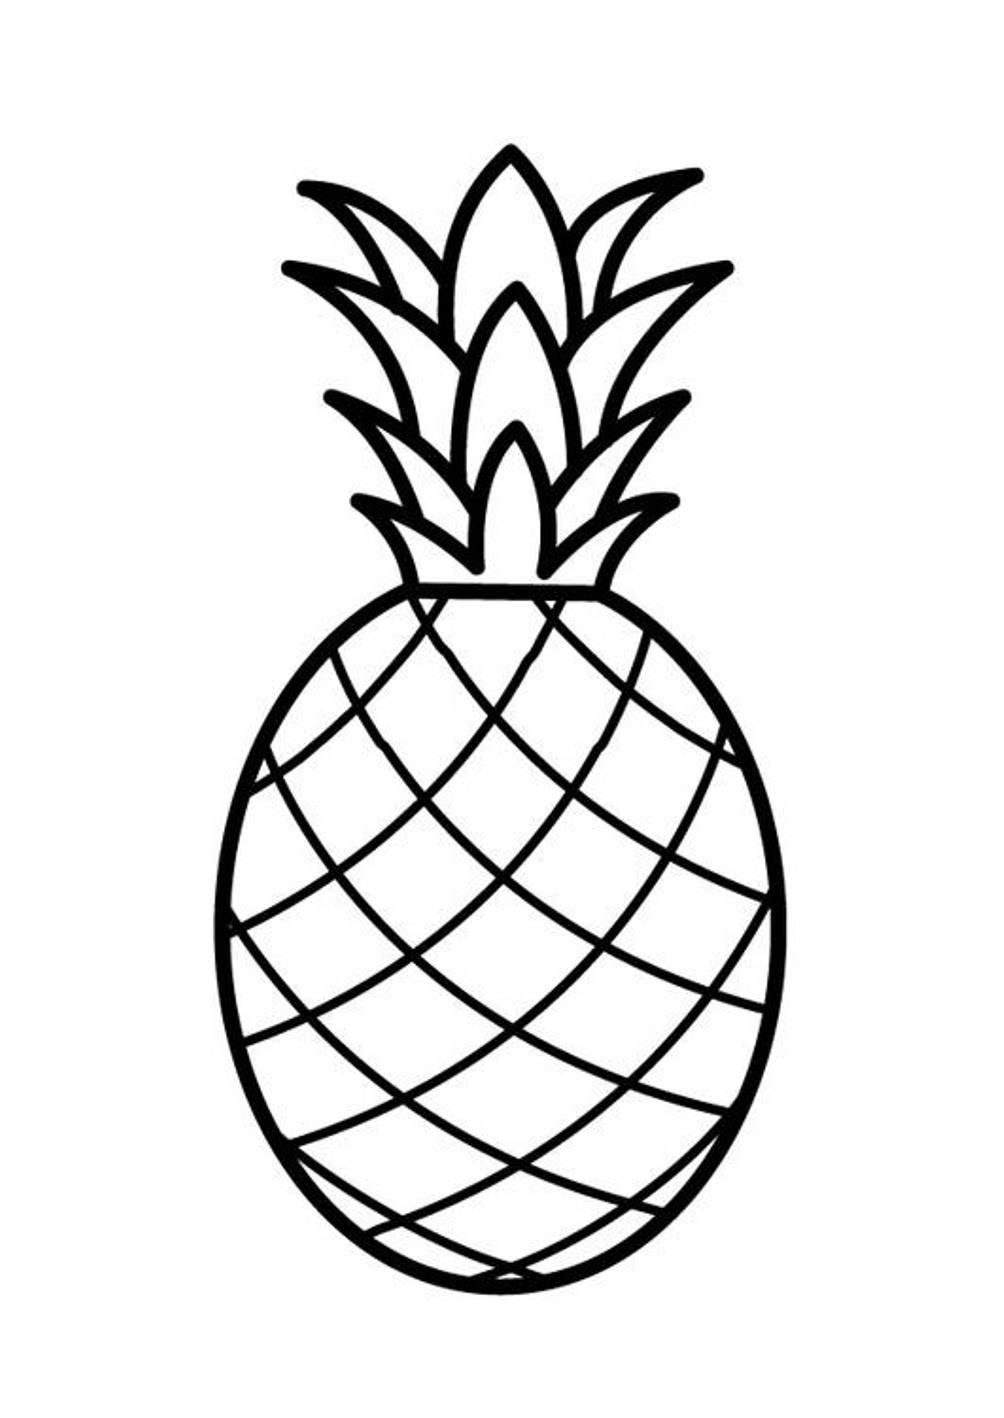 Printable Pineapple Coloring Pages For Kids Fruit Coloring Pages Pineapple Drawing Fruits Drawing